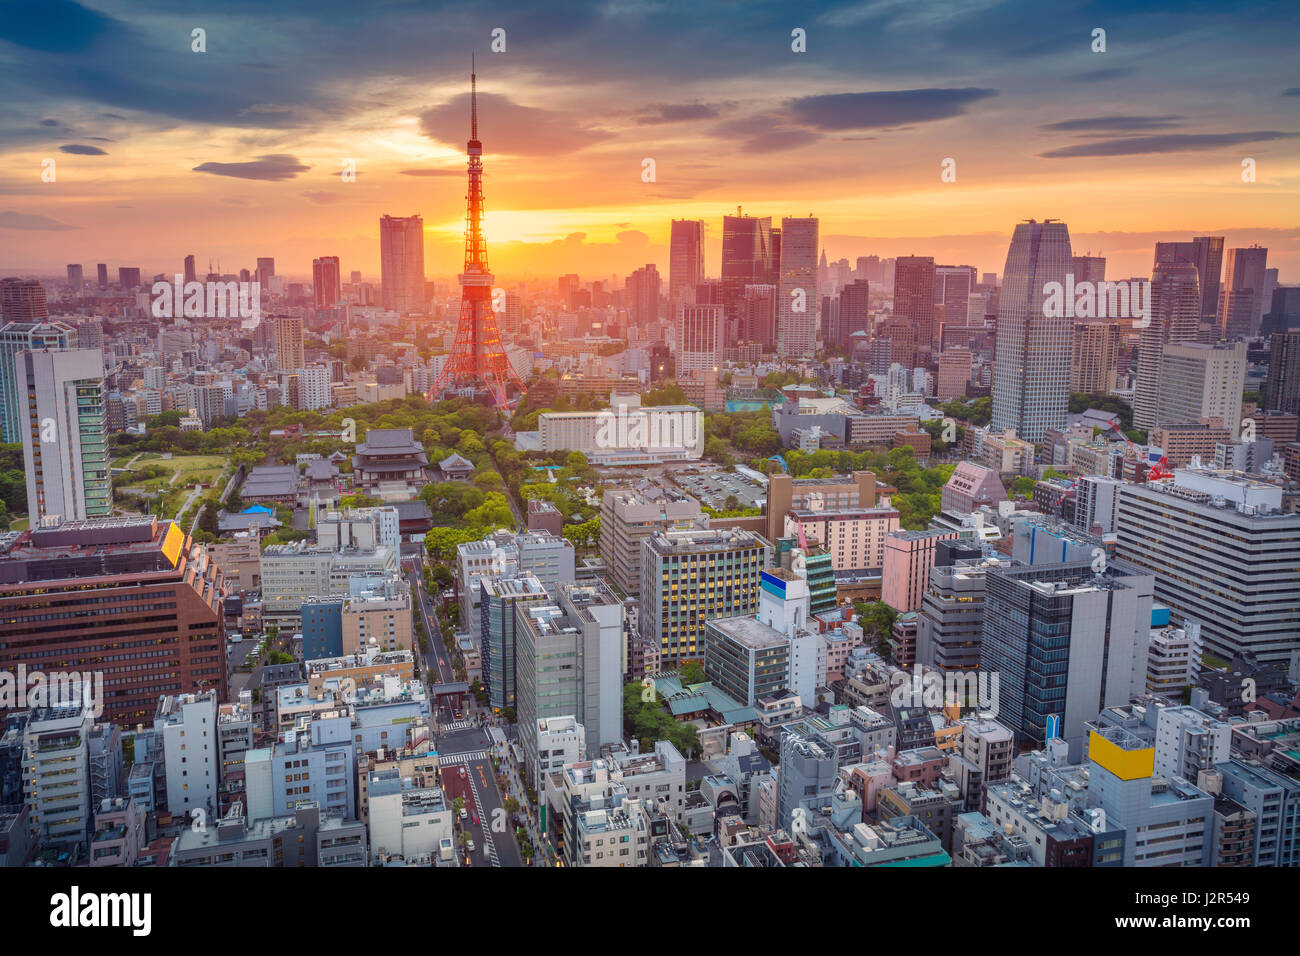 Tokyo. Cityscape image of Tokyo, Japan during sunset. - Stock Image